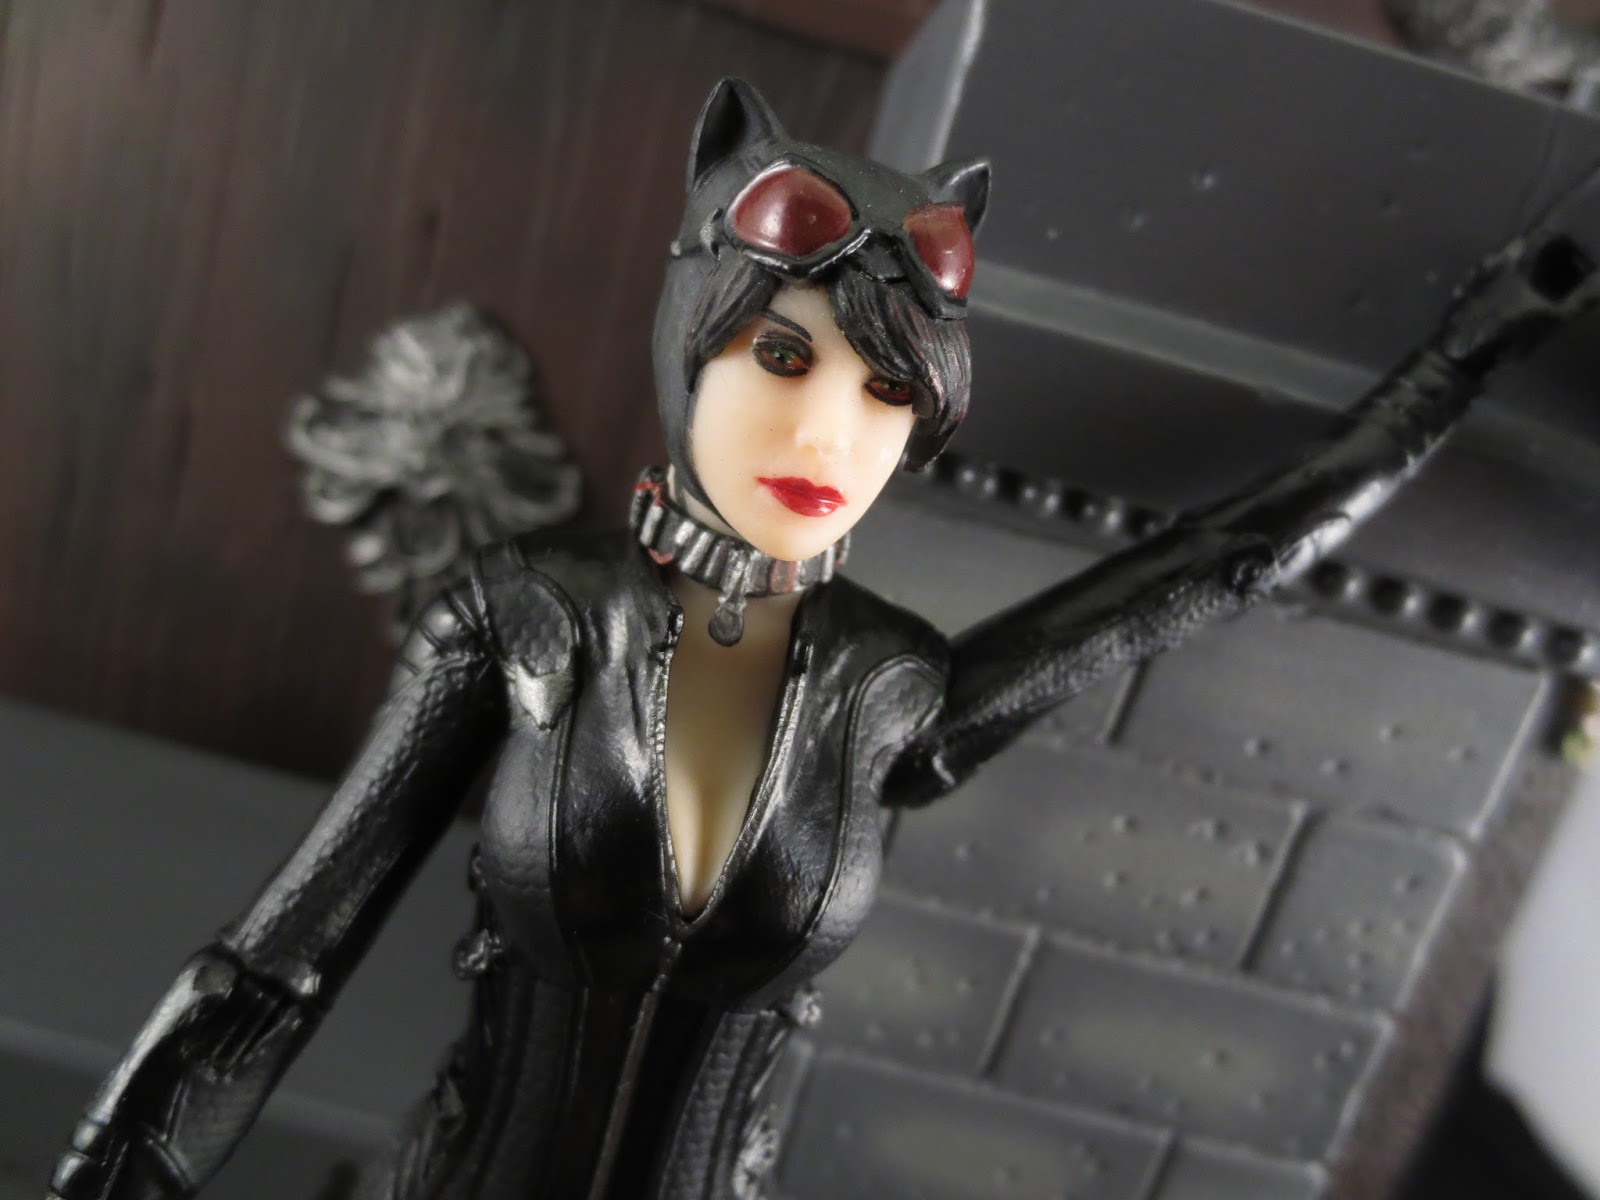 Action Figure Review Catwoman From Batman Arkham Knight By DC Collectibles